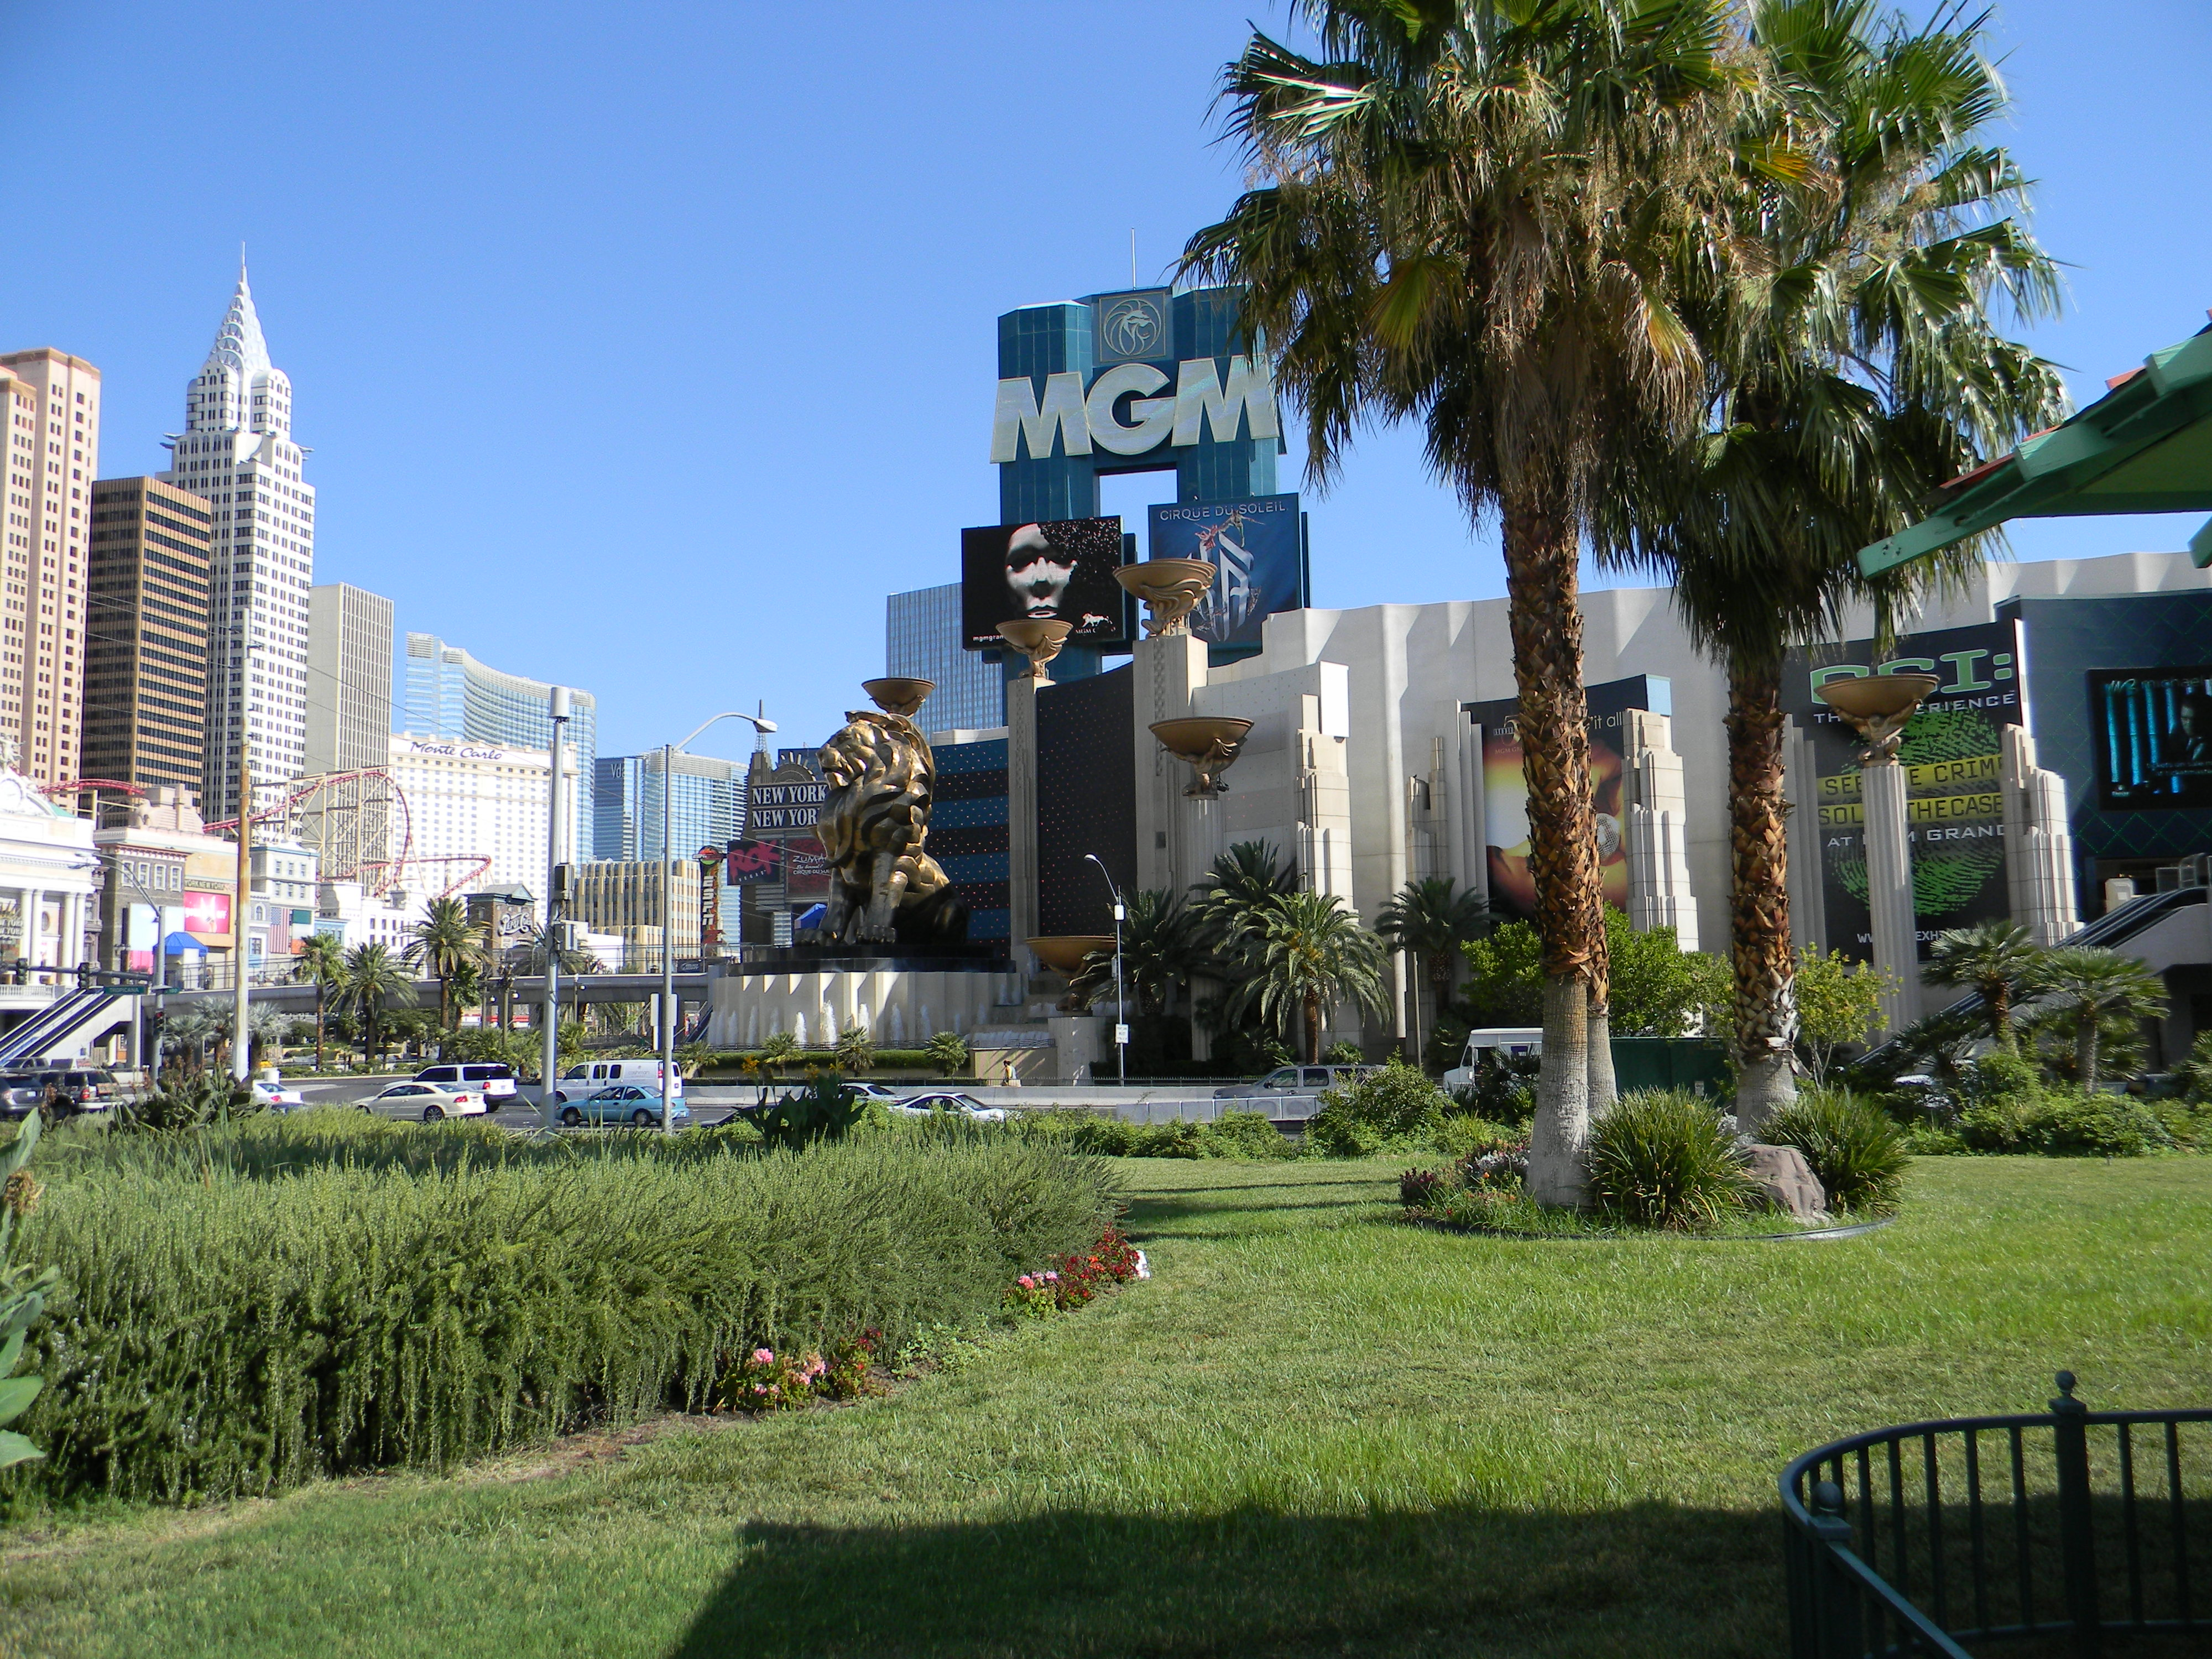 Mgm Grand Hotel And Casino Las Vegas Nv